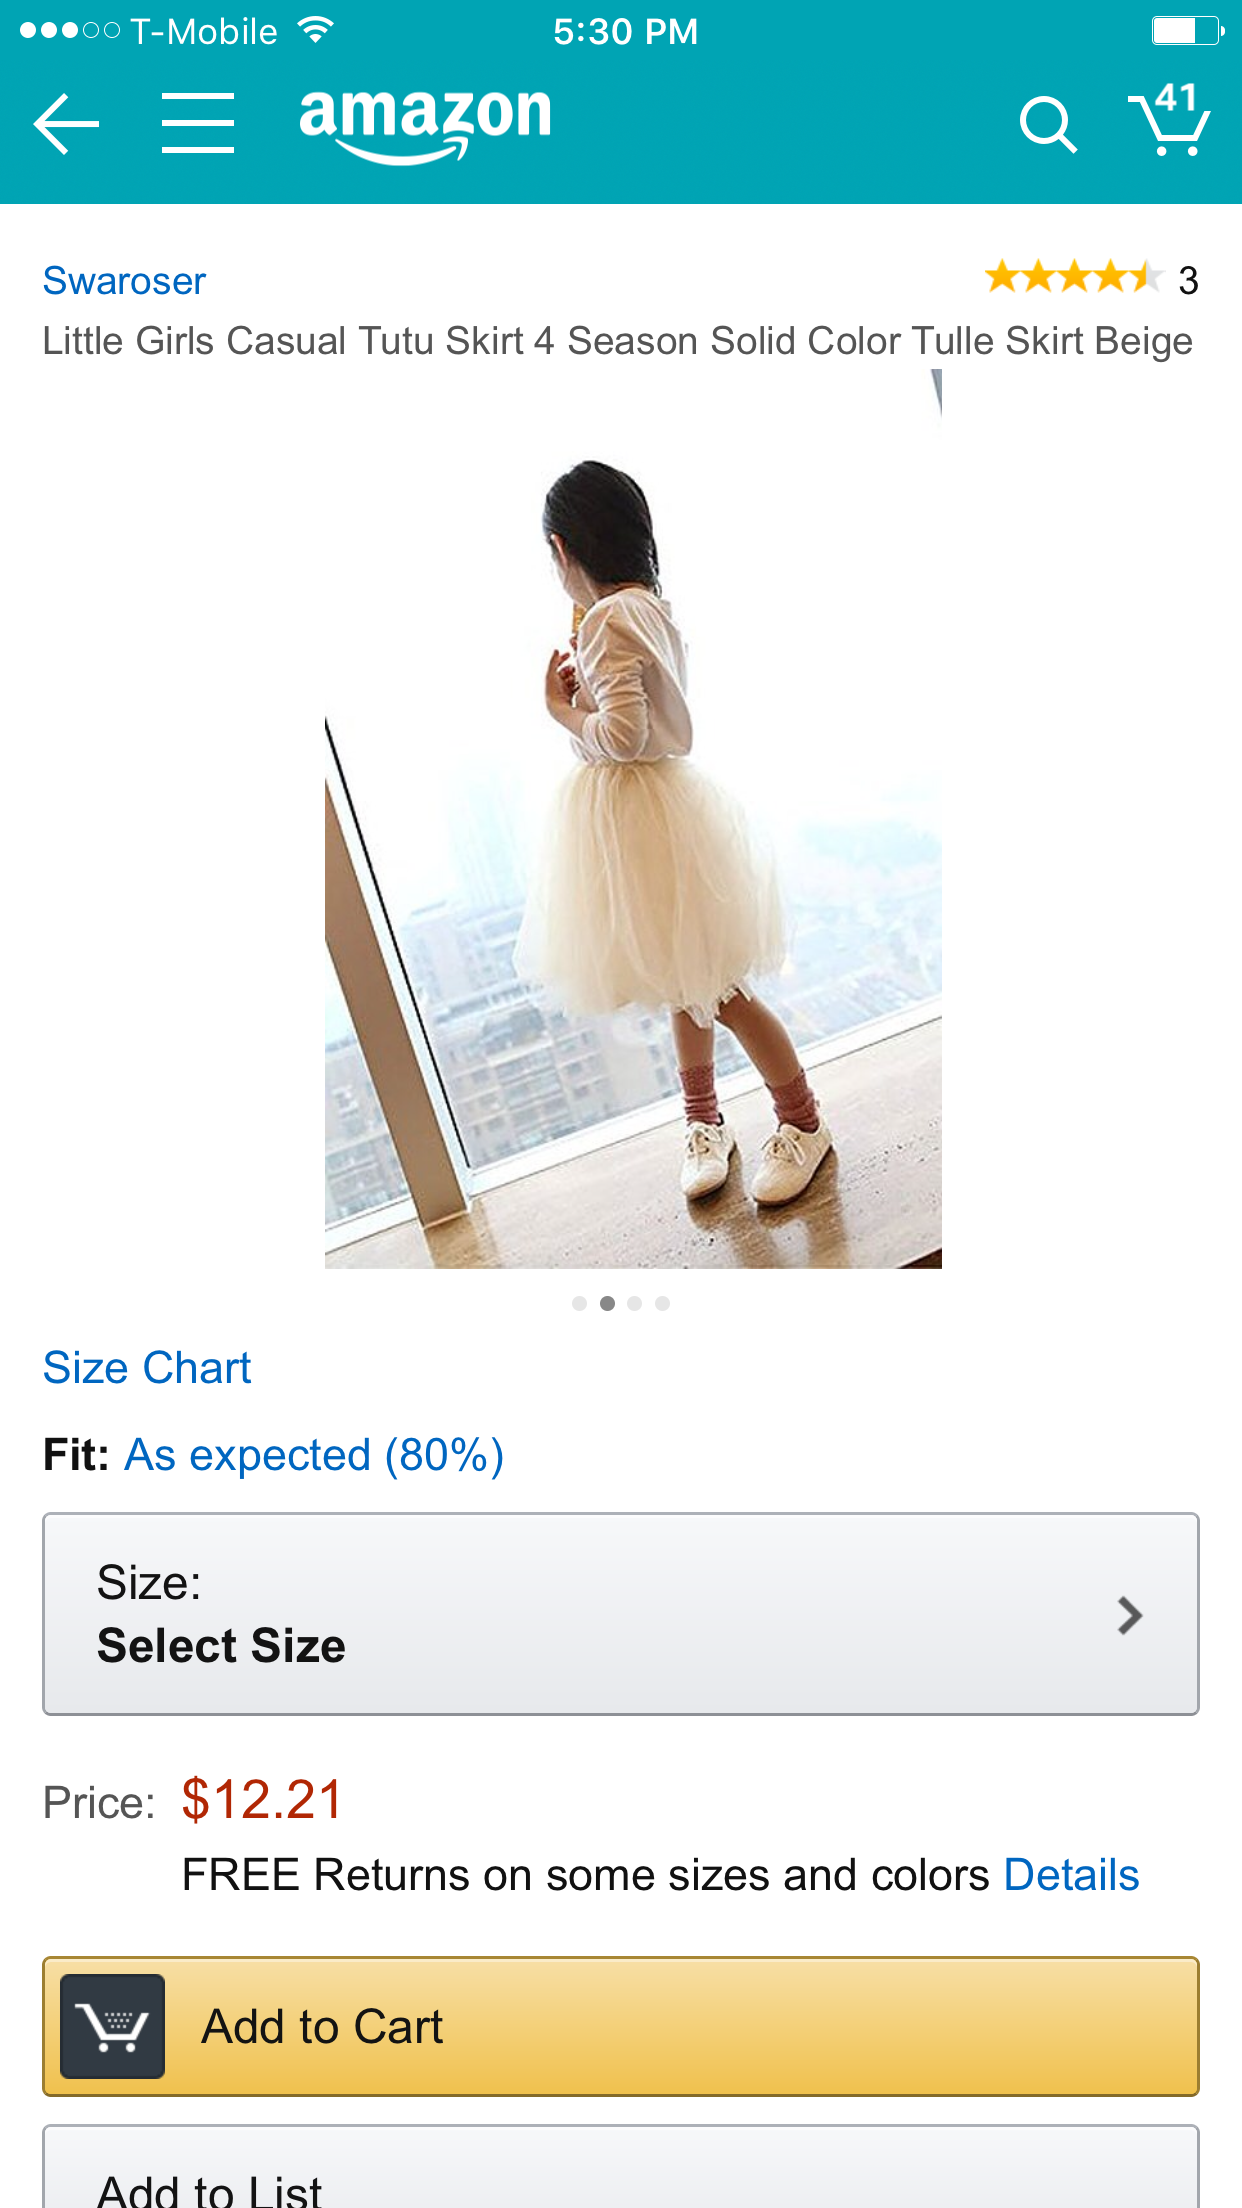 Swaroser Little Girls Casual Tutu Skirt 4 Season Solid Color Tulle Skirt Beige 4-5Y https://www.amazon.com/dp/B01A0GM9DO/ref=cm_sw_r_cp_api_RA9gyb2MD7NXT